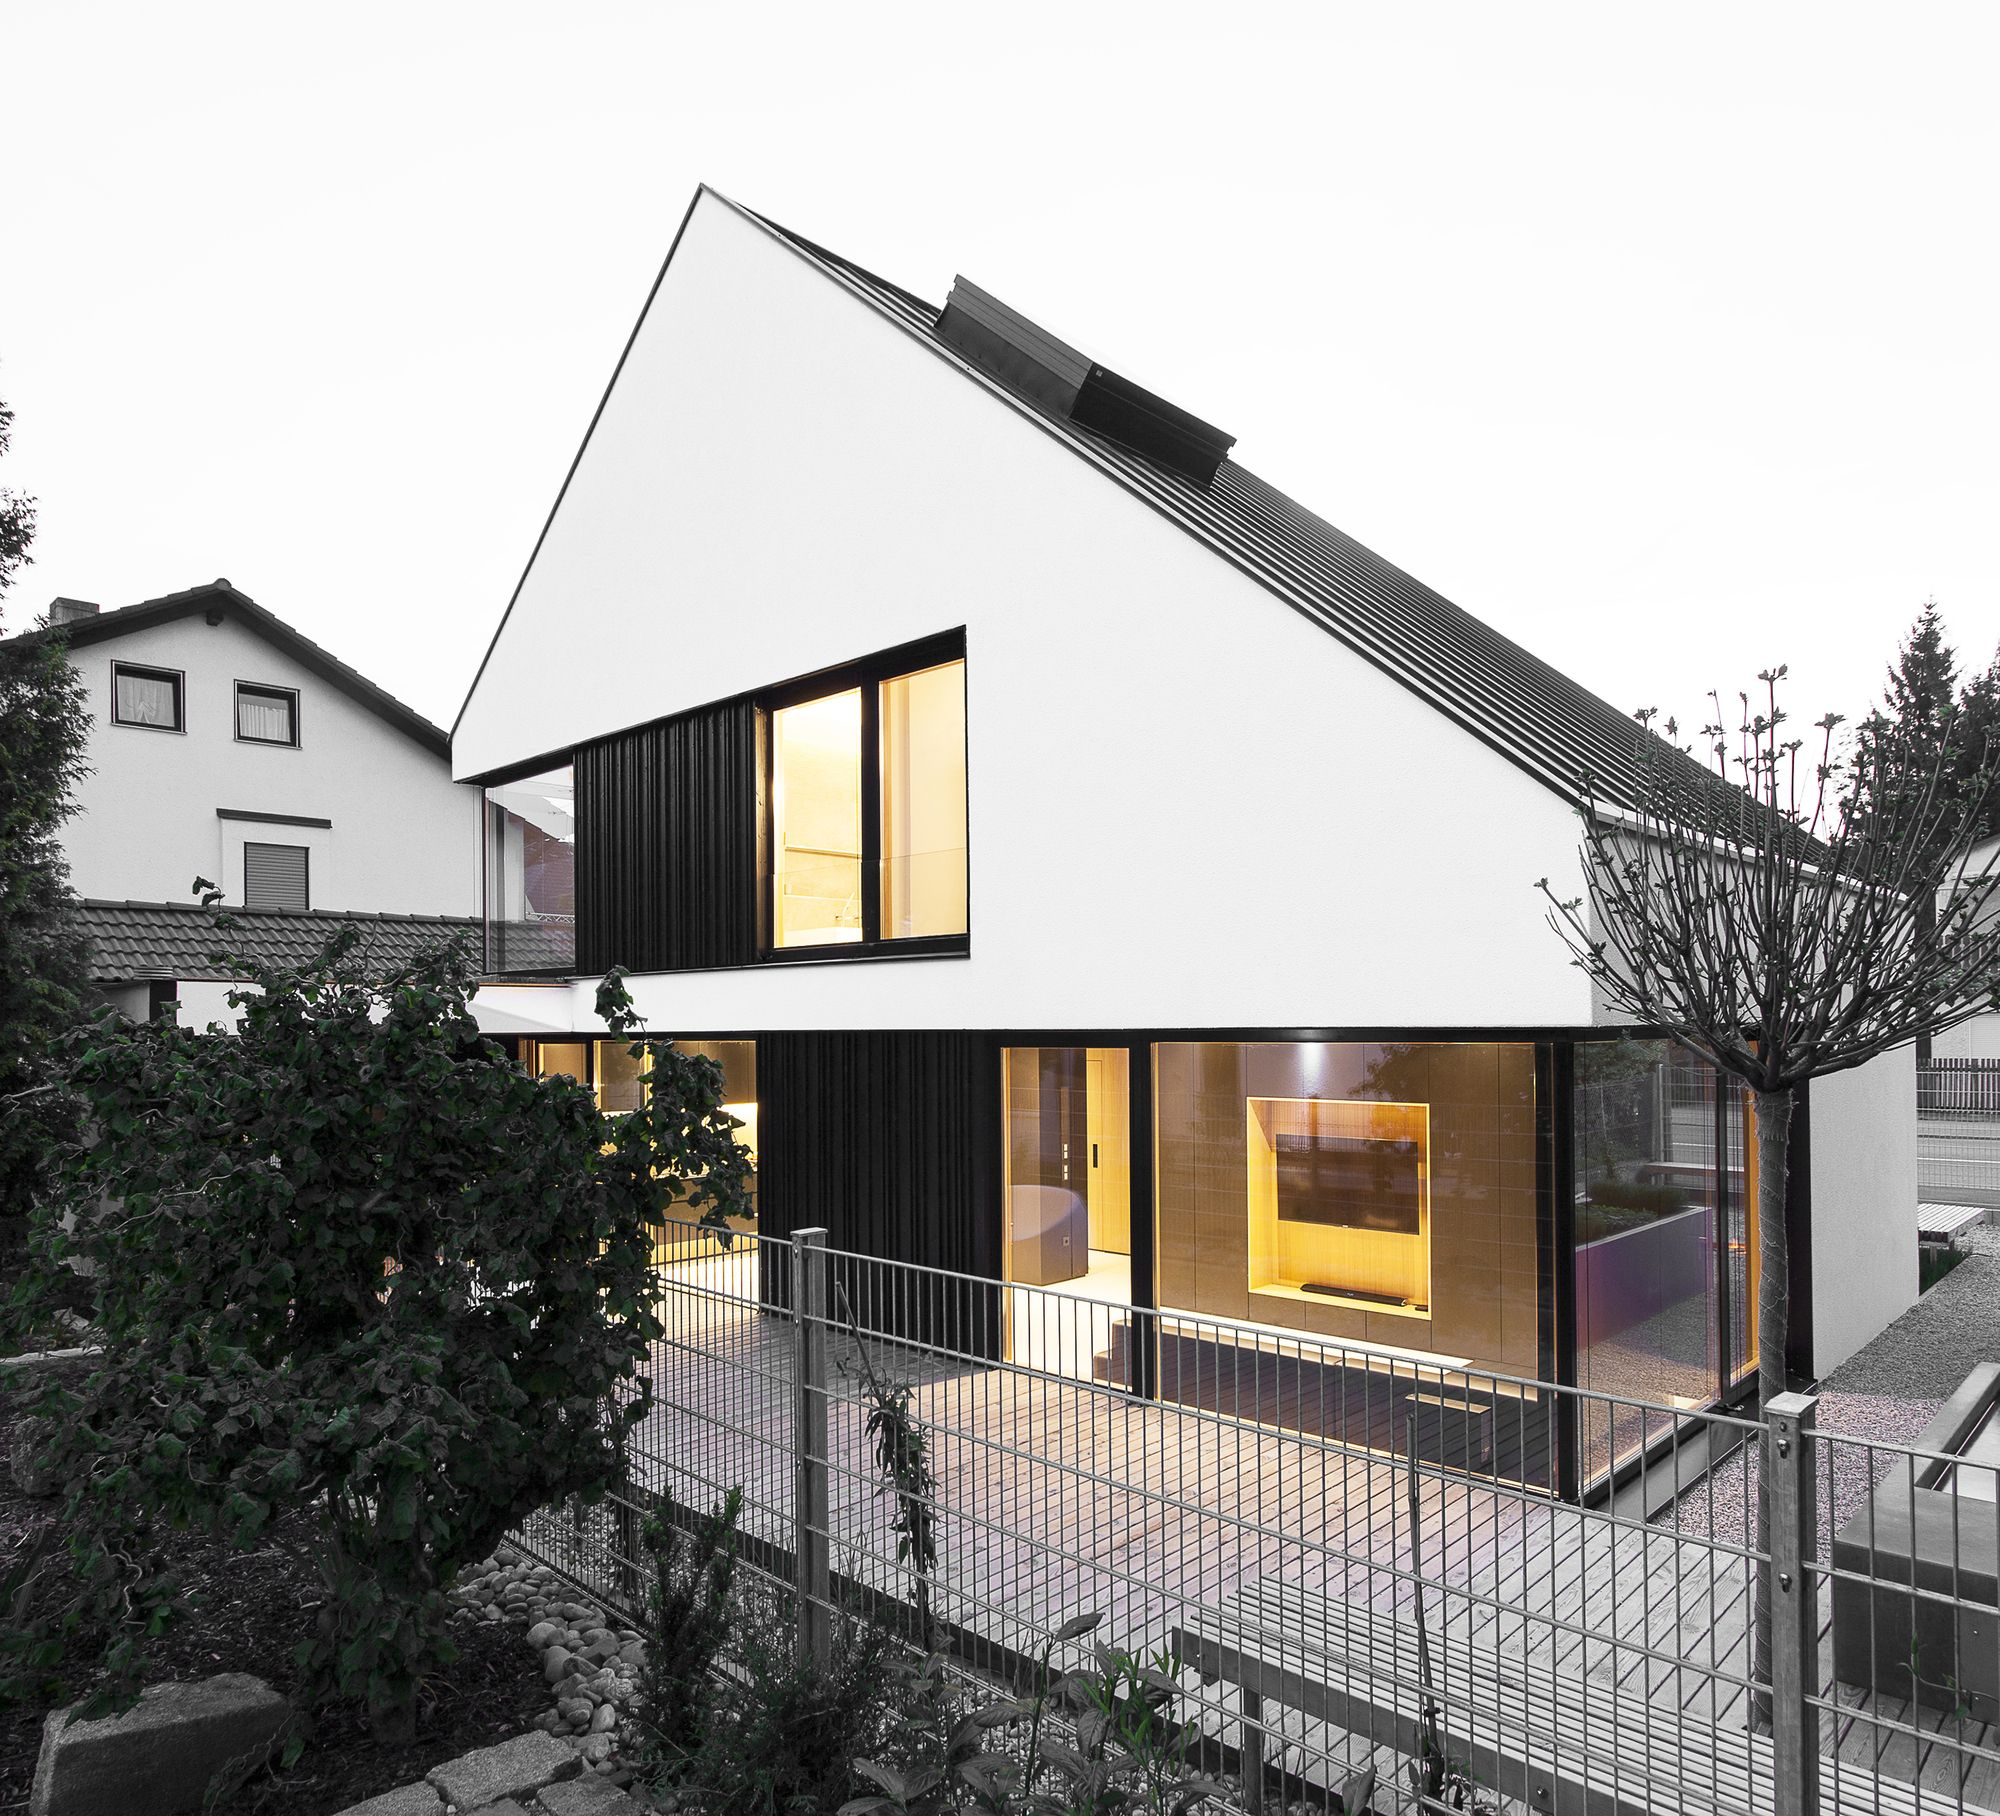 ^ 1000+ images about Haus on Pinterest amen, Scandinavian house ...